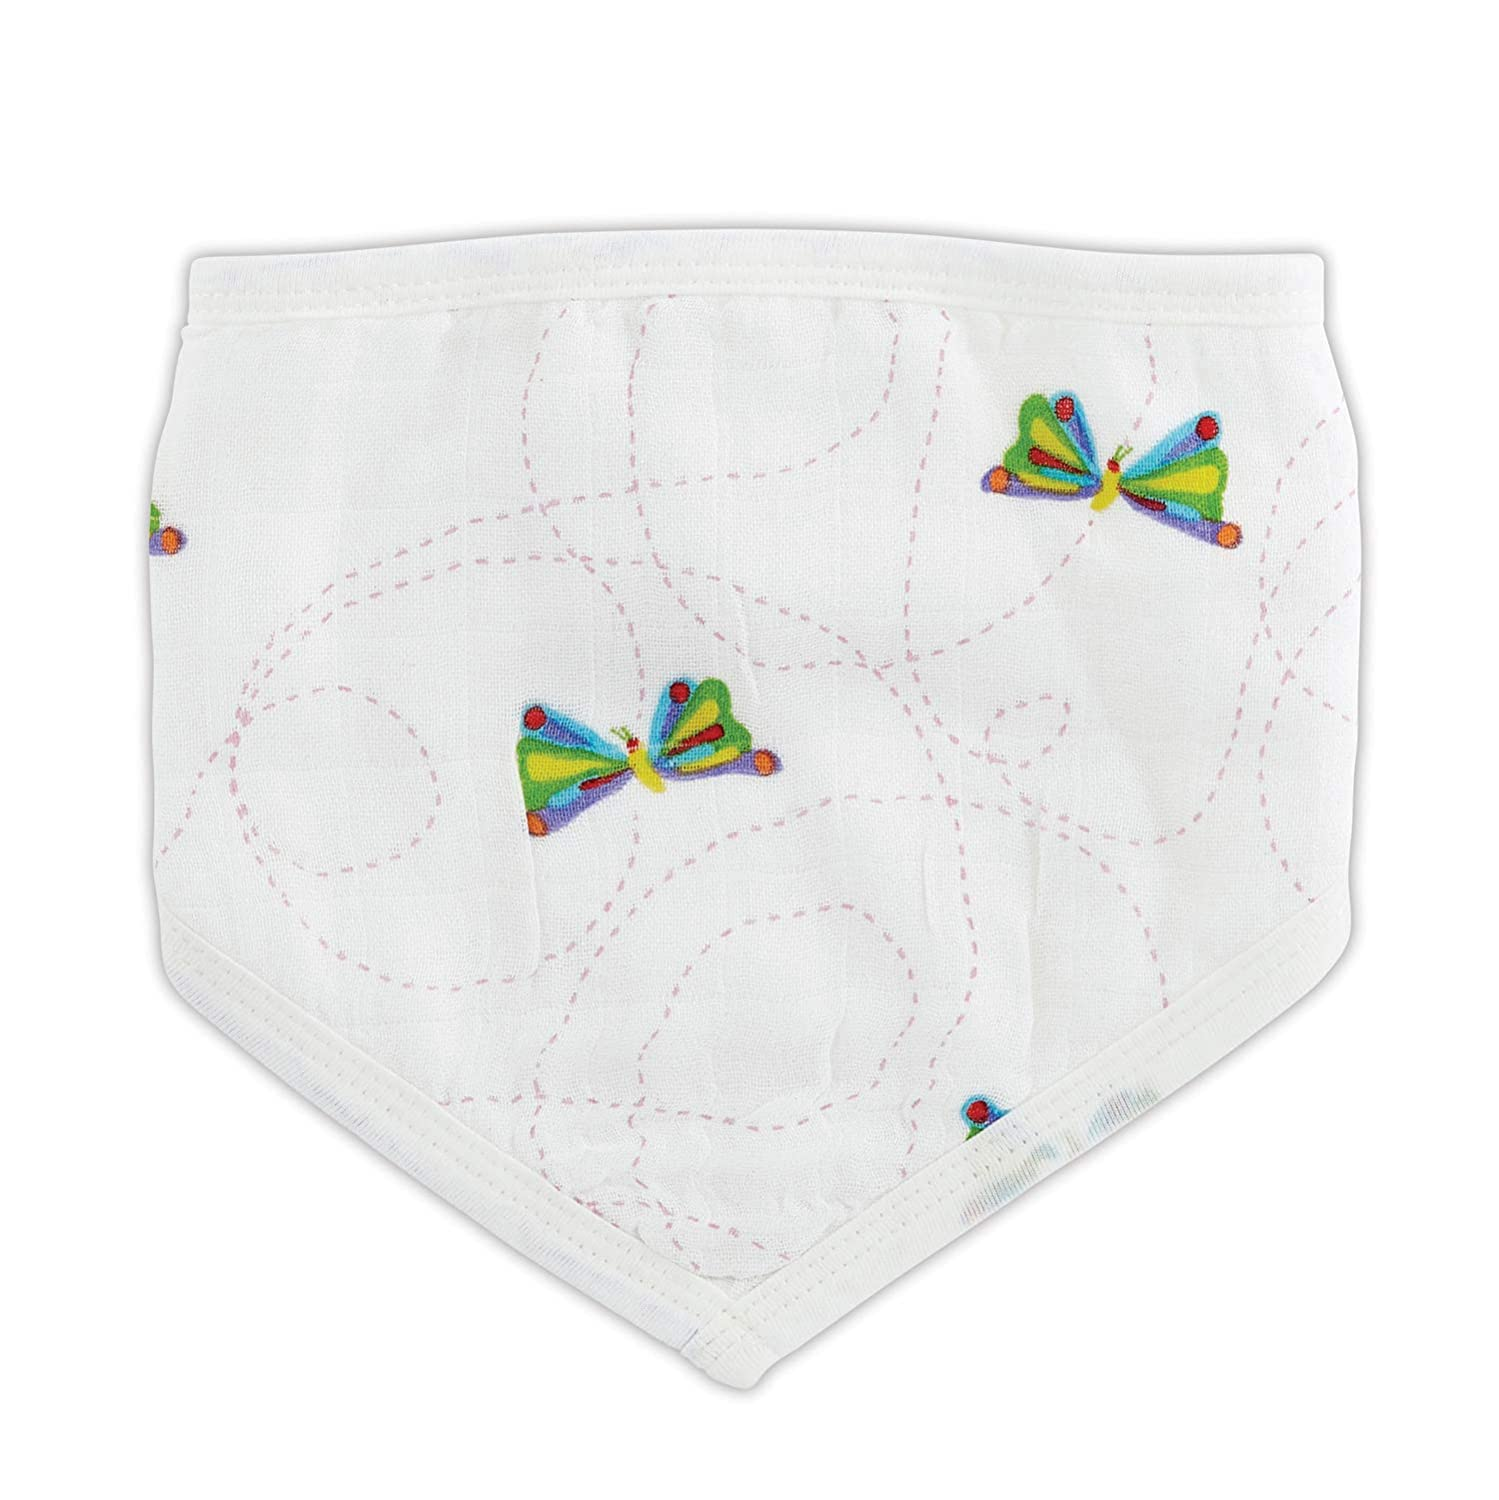 Stephan Baby Eric Carle Viscose Cotton Muslin Swaddle Blanket Available in 2 Designs Very Hungry Caterpillar Butterflies